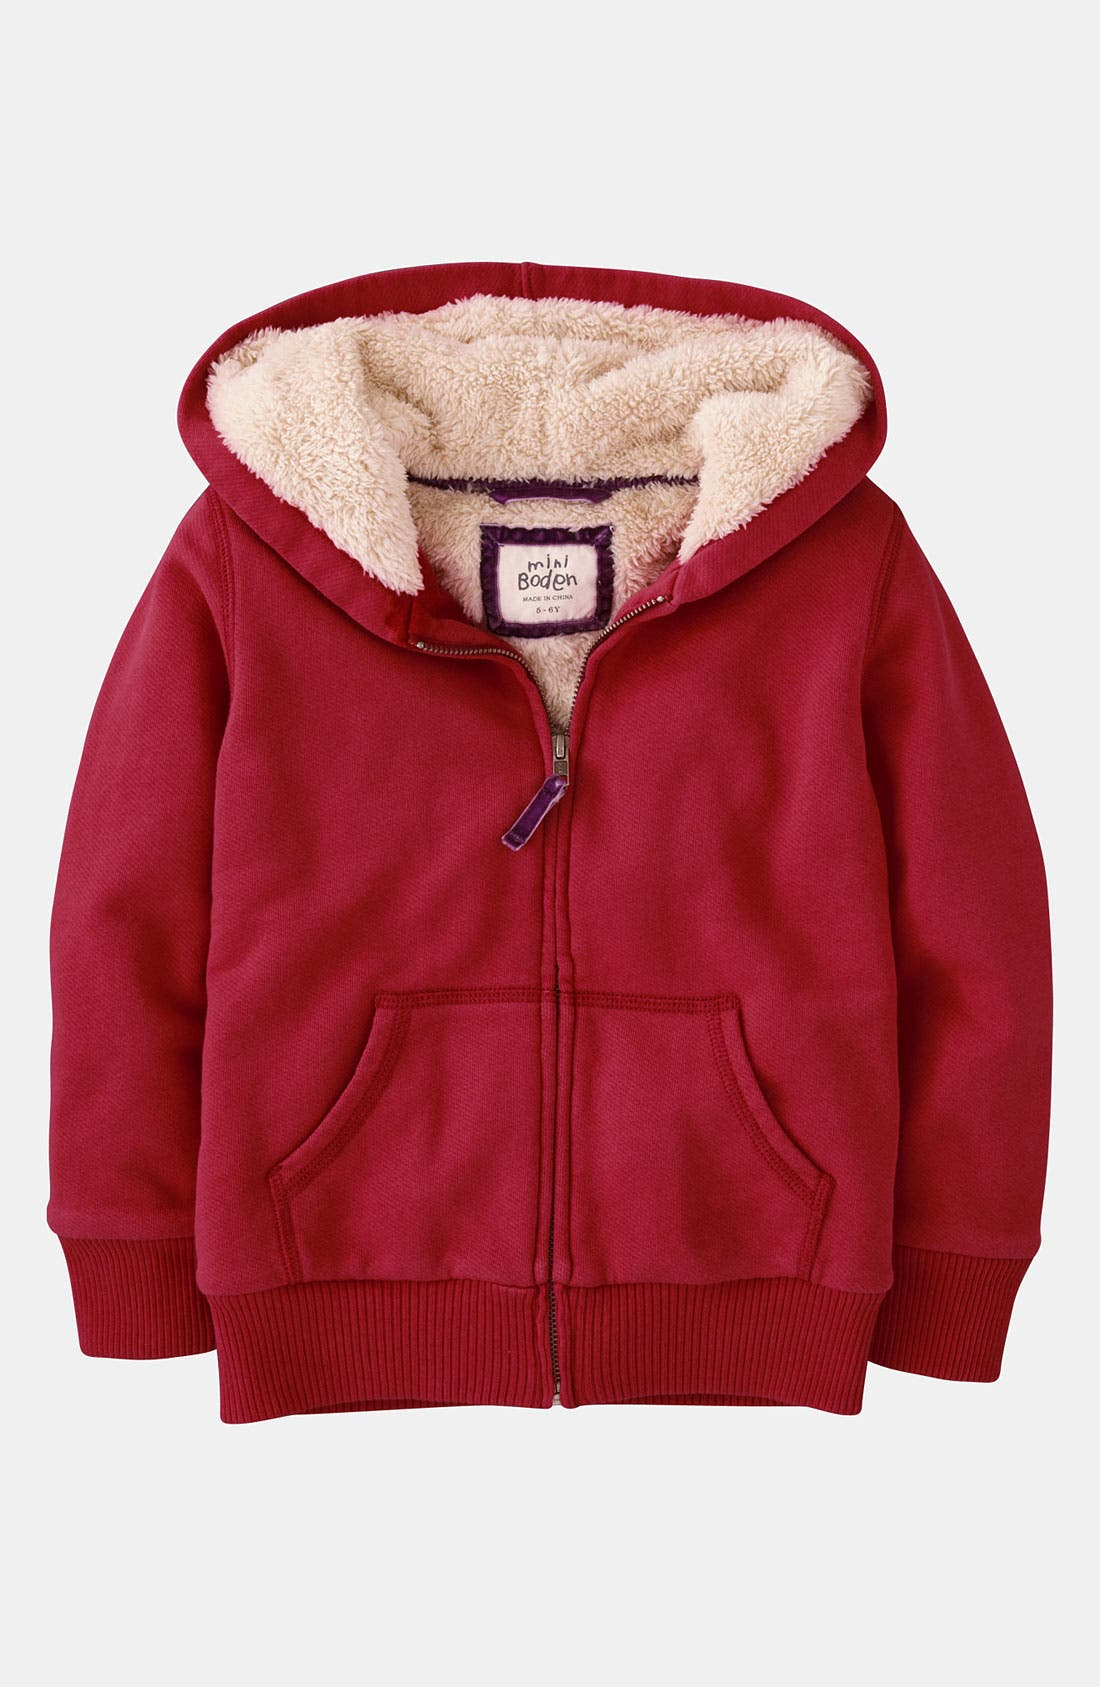 Alternate Image 1 Selected - Mini Boden 'Shaggy' Hoodie (Little Girls & Big Girls)